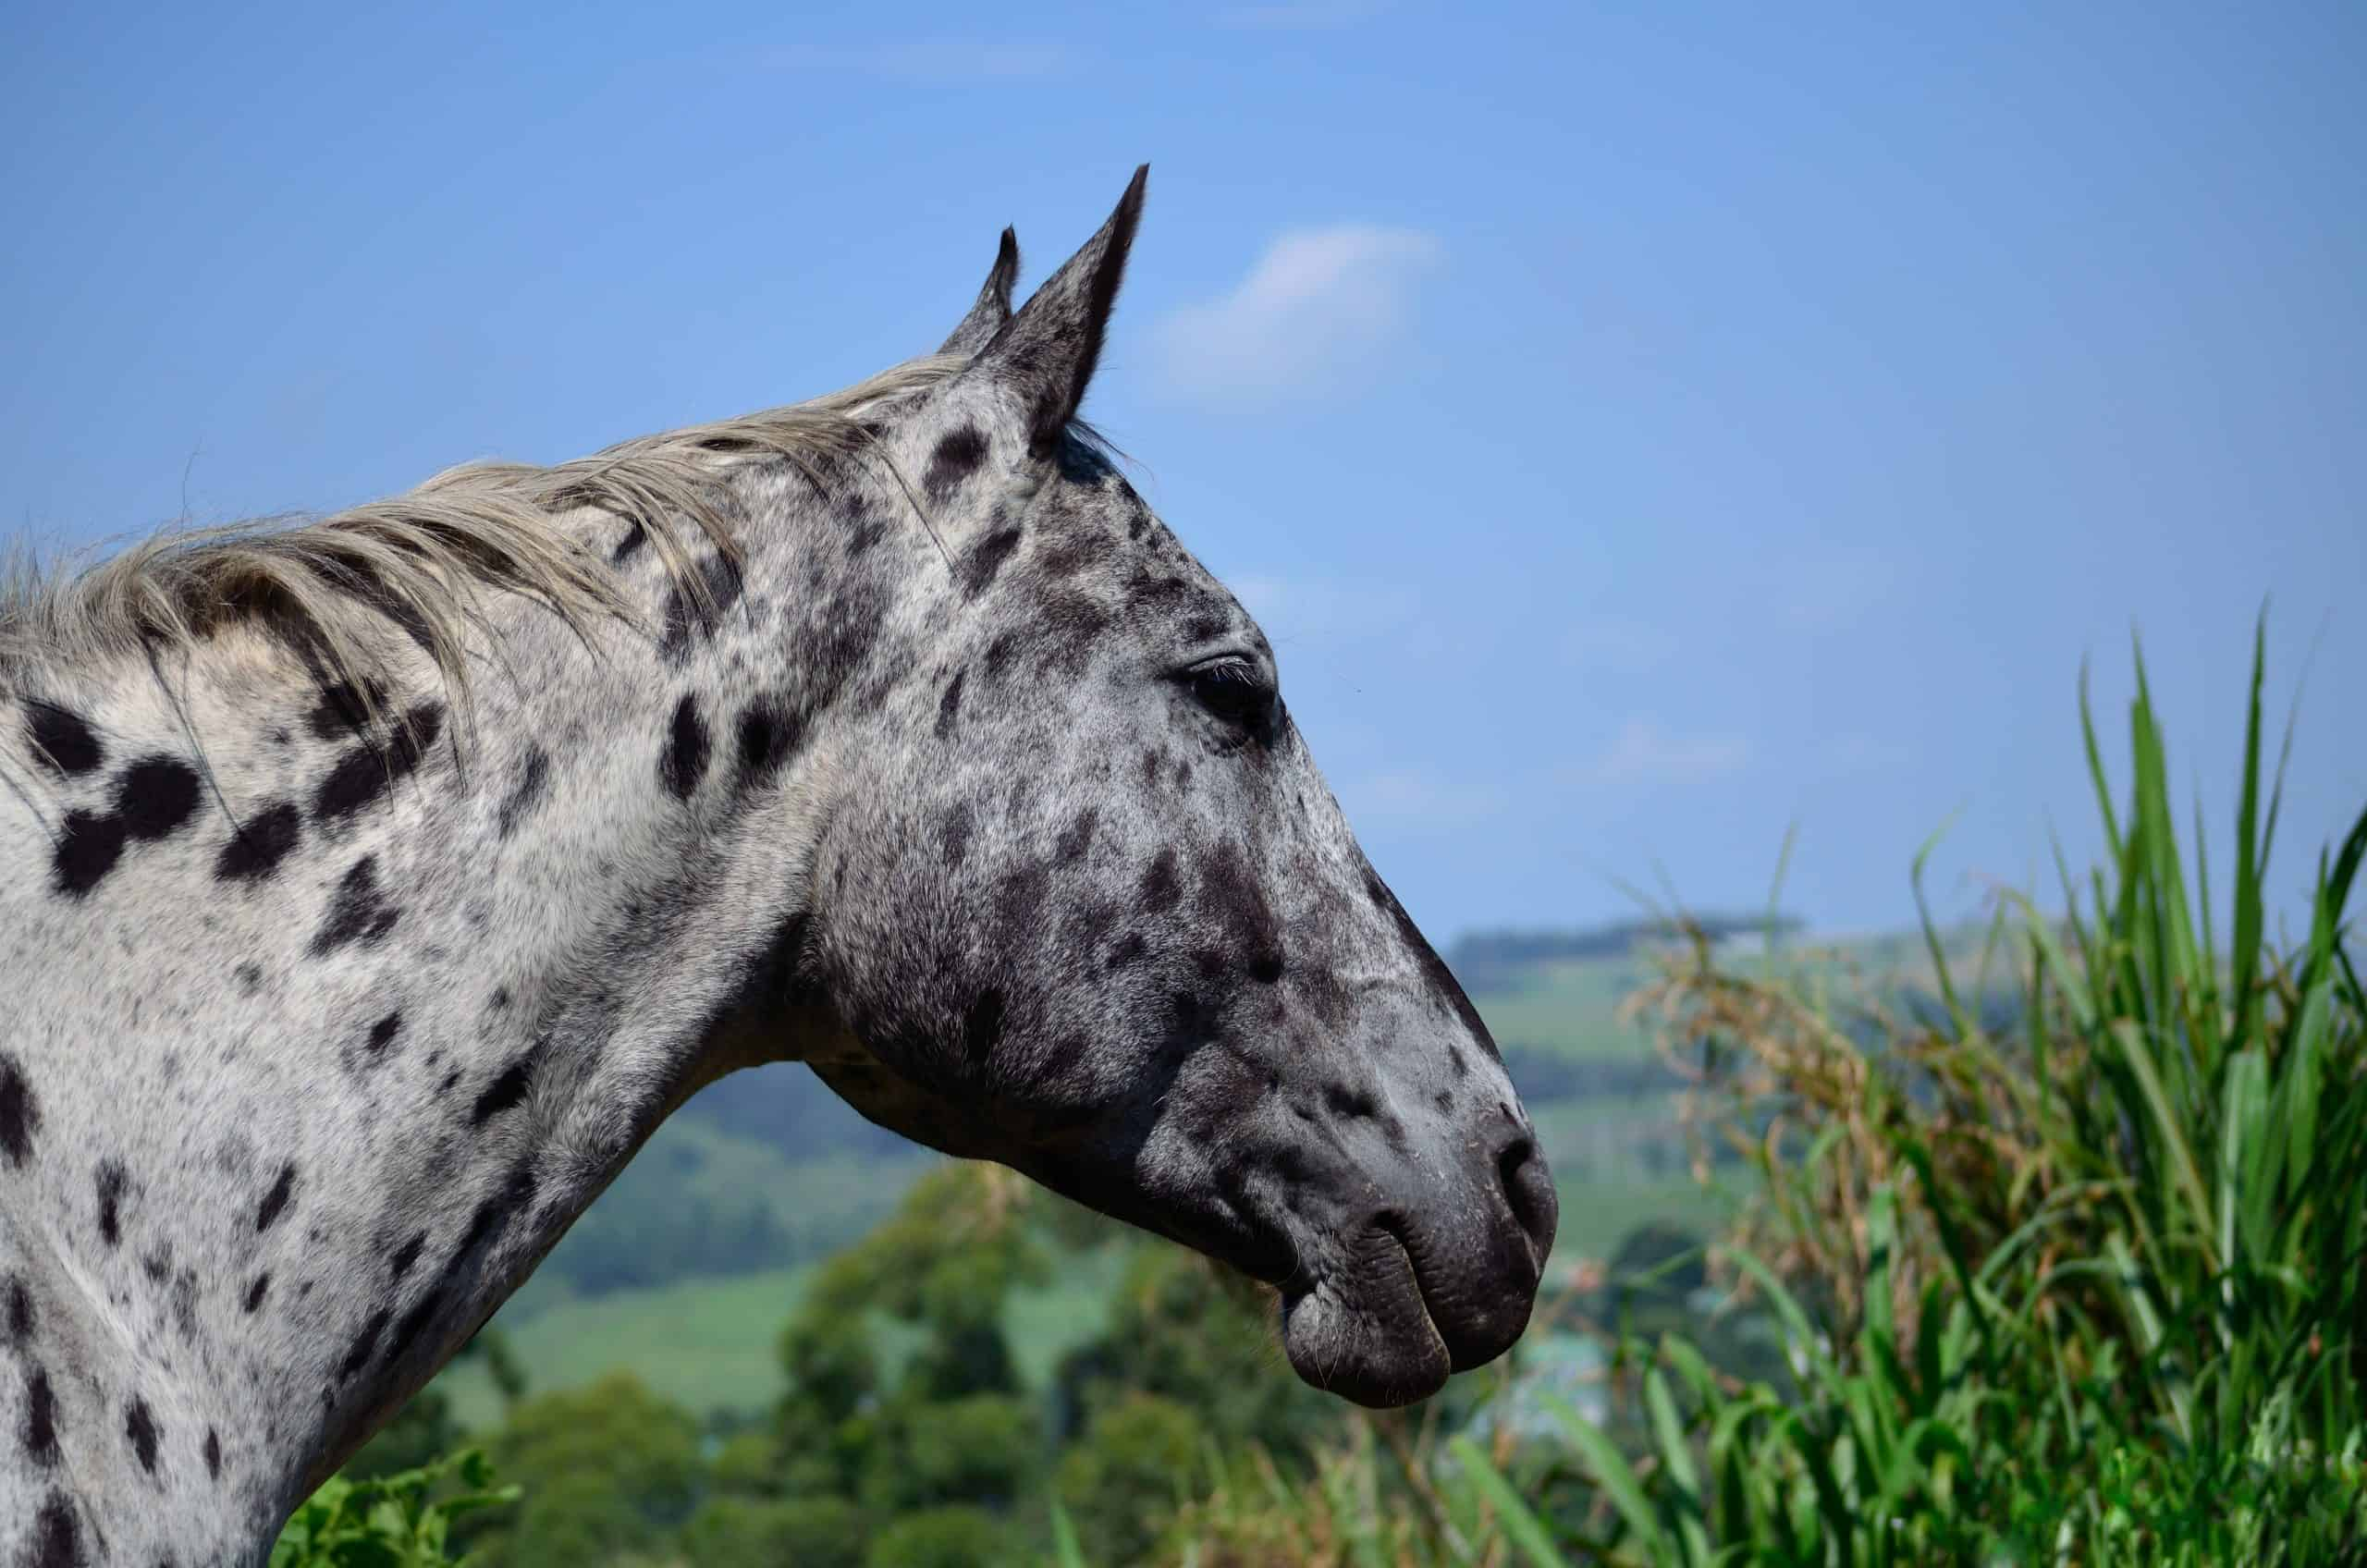 A spotted appaloosa head